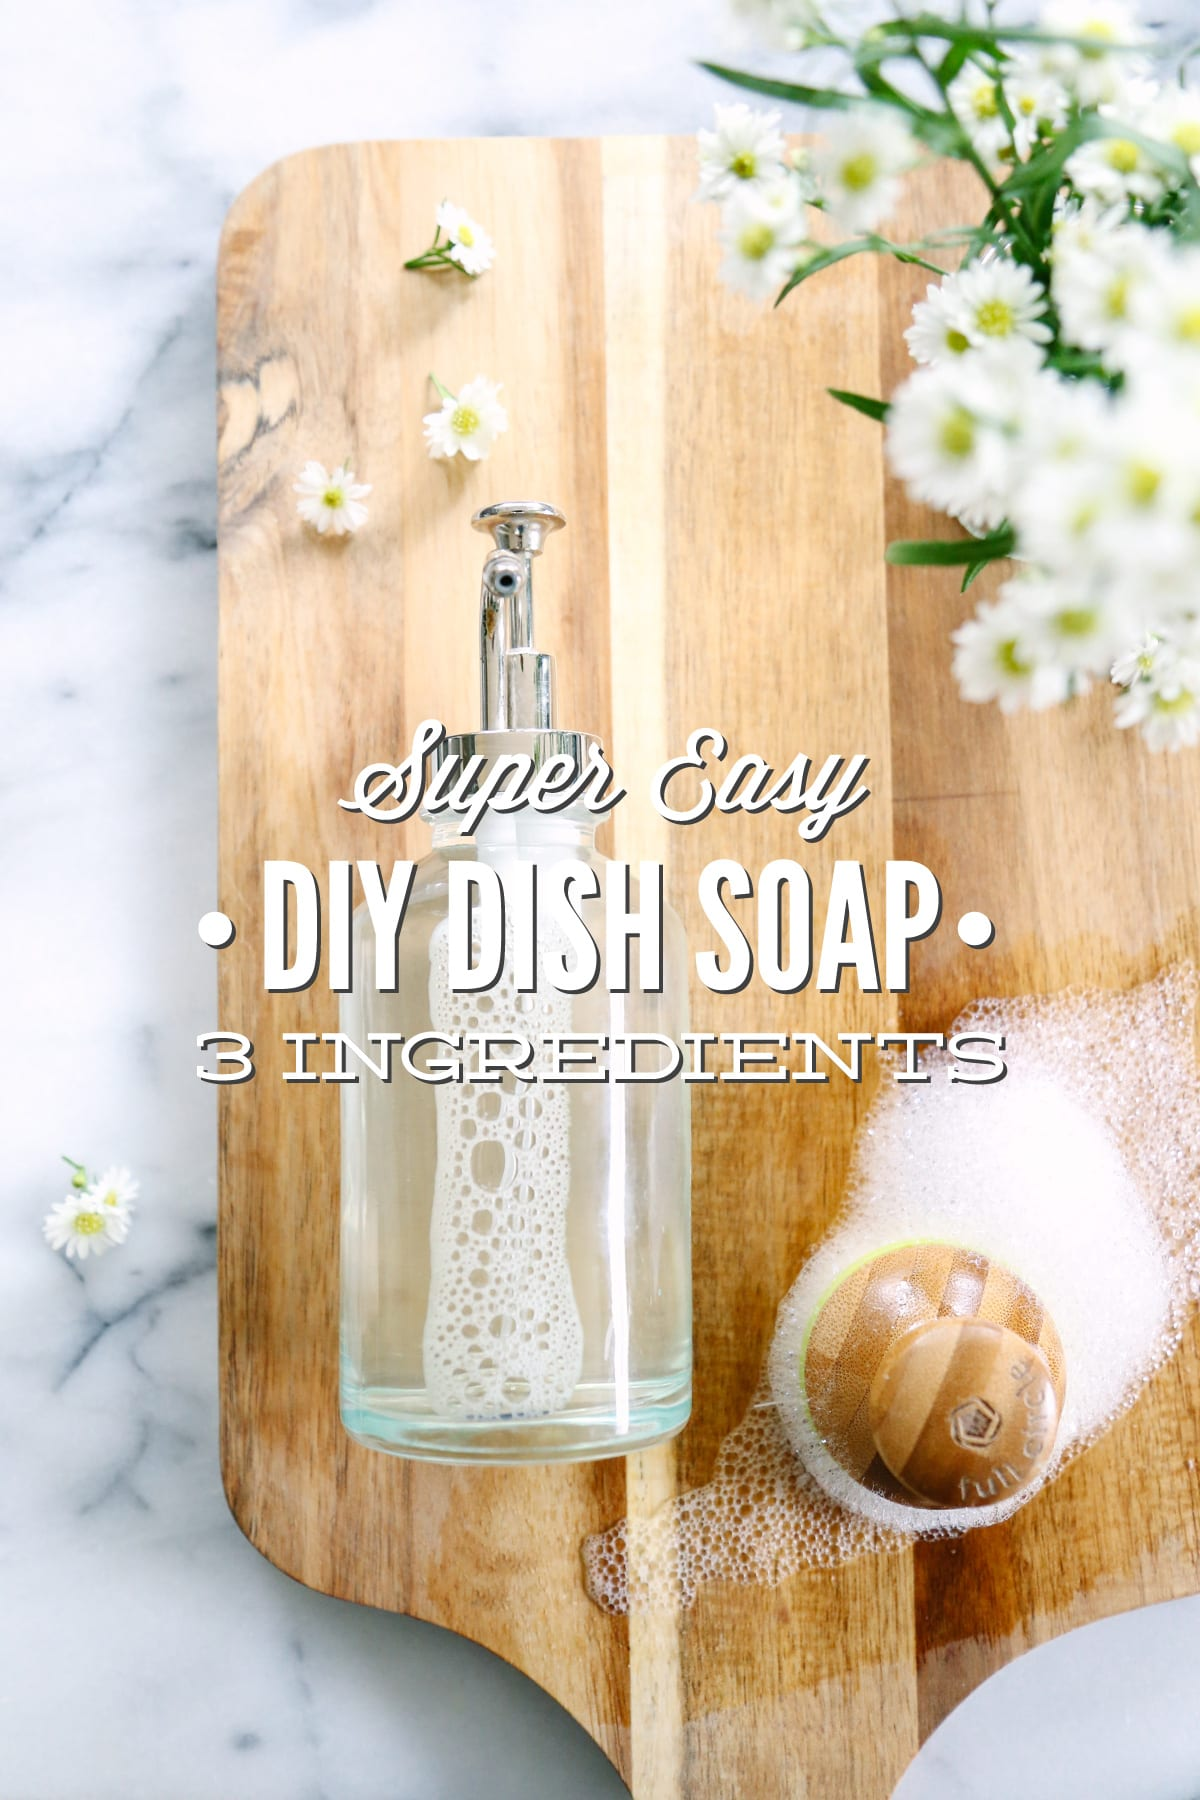 3 Easy Diy Storage Ideas For Small Kitchen: Super Easy DIY Dish Soap: 3 Ingredients